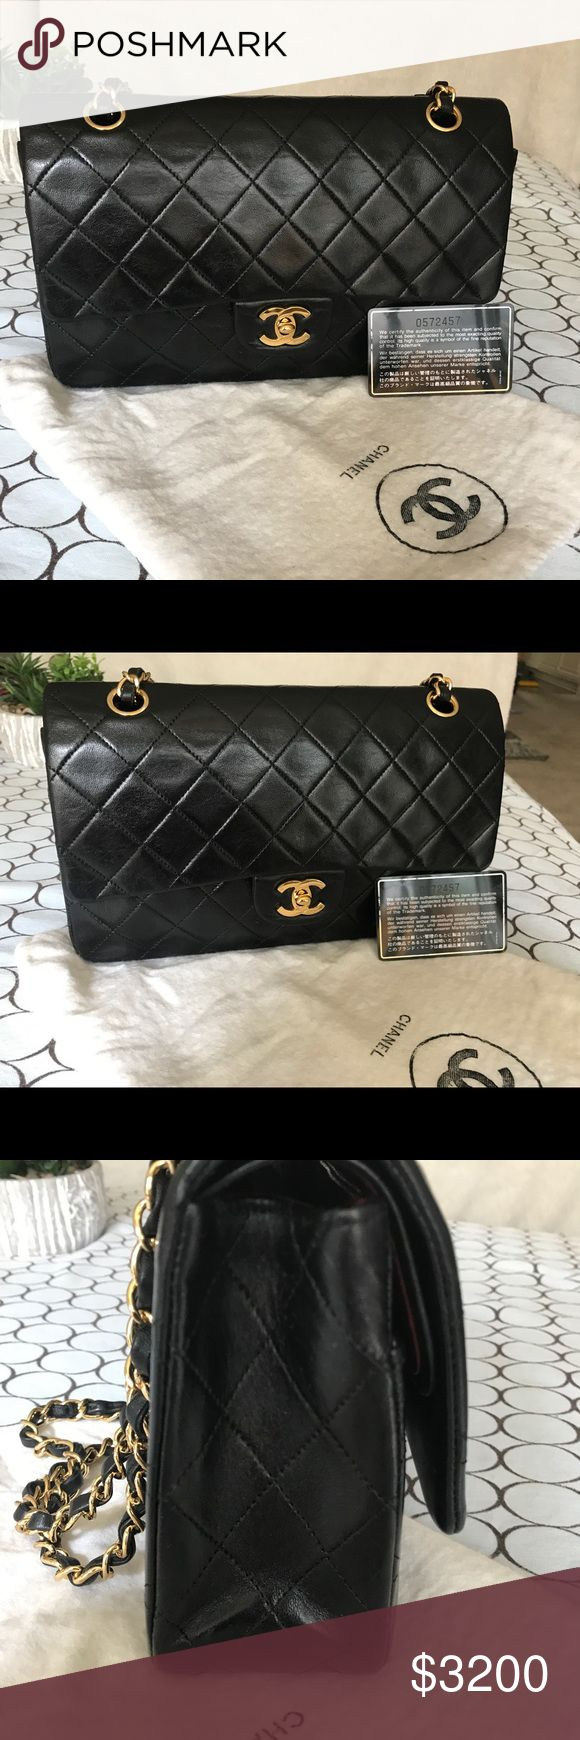 Chanel medium lambskin shoulder bag Great condition. It has been stored using protection, but there is a mark inside the flap due to string position. Certification card included. CHANEL Bags Shoulder Bags